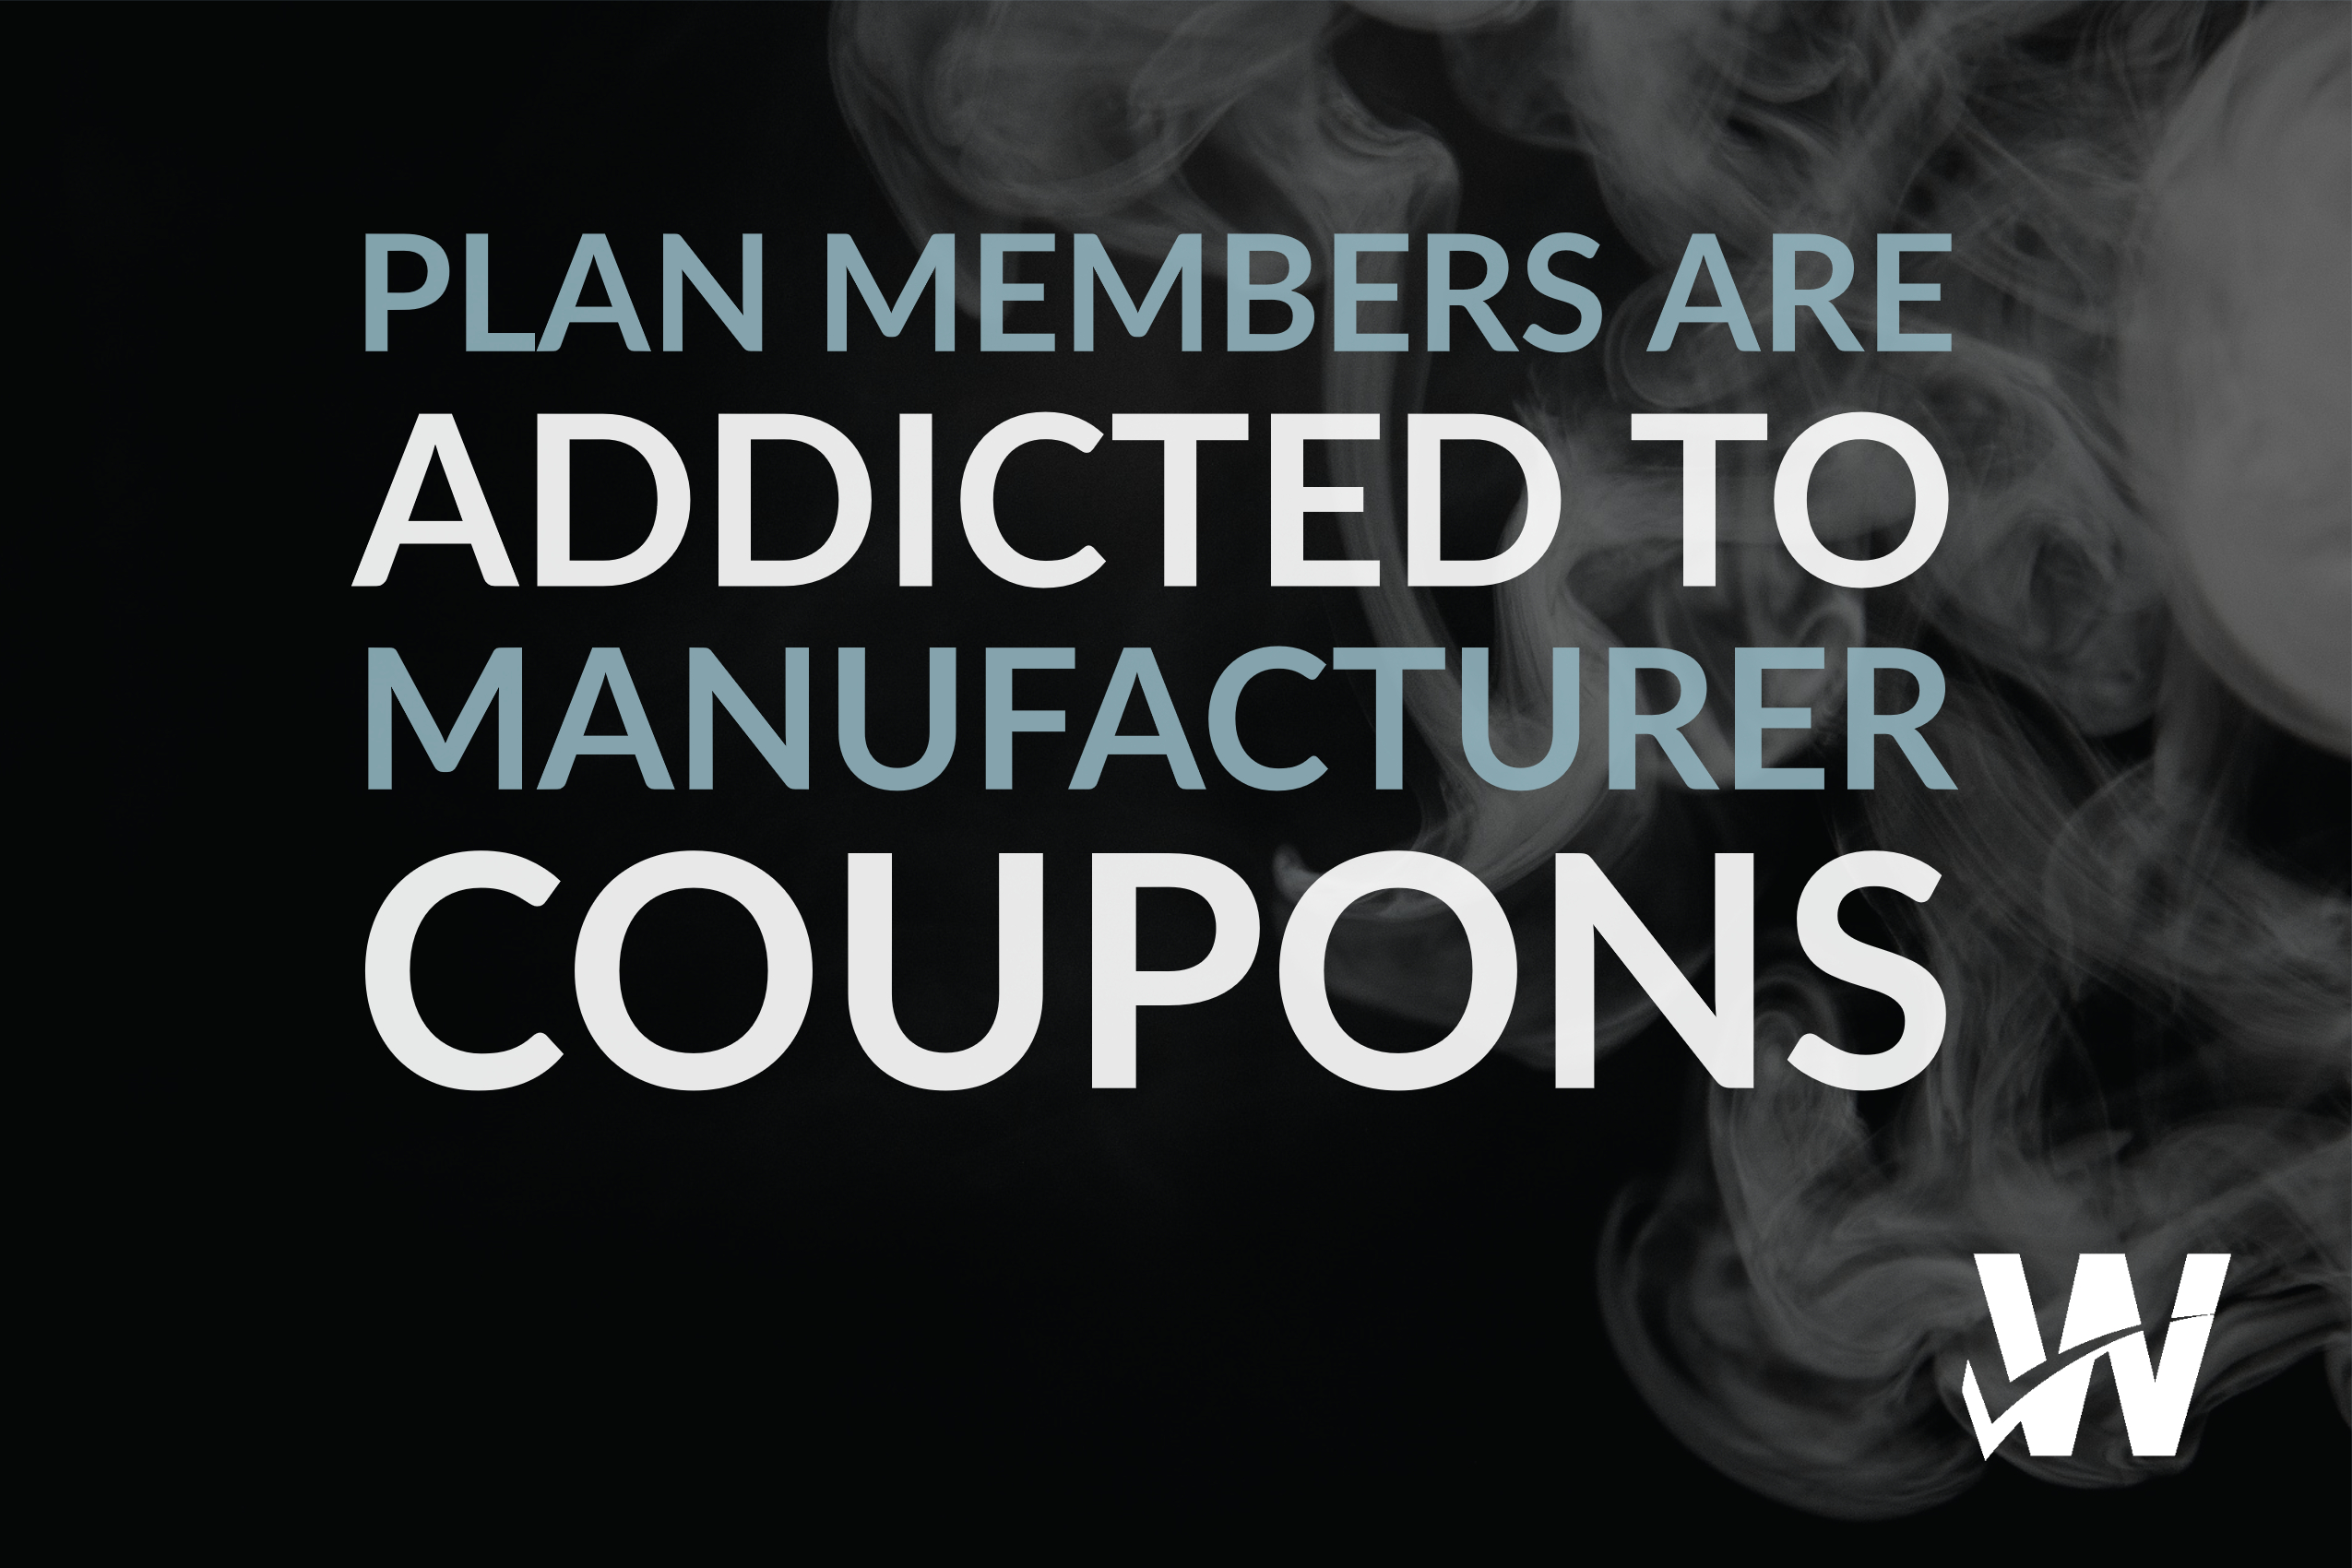 Plan Members Are Addicted to Manufacturer Coupons